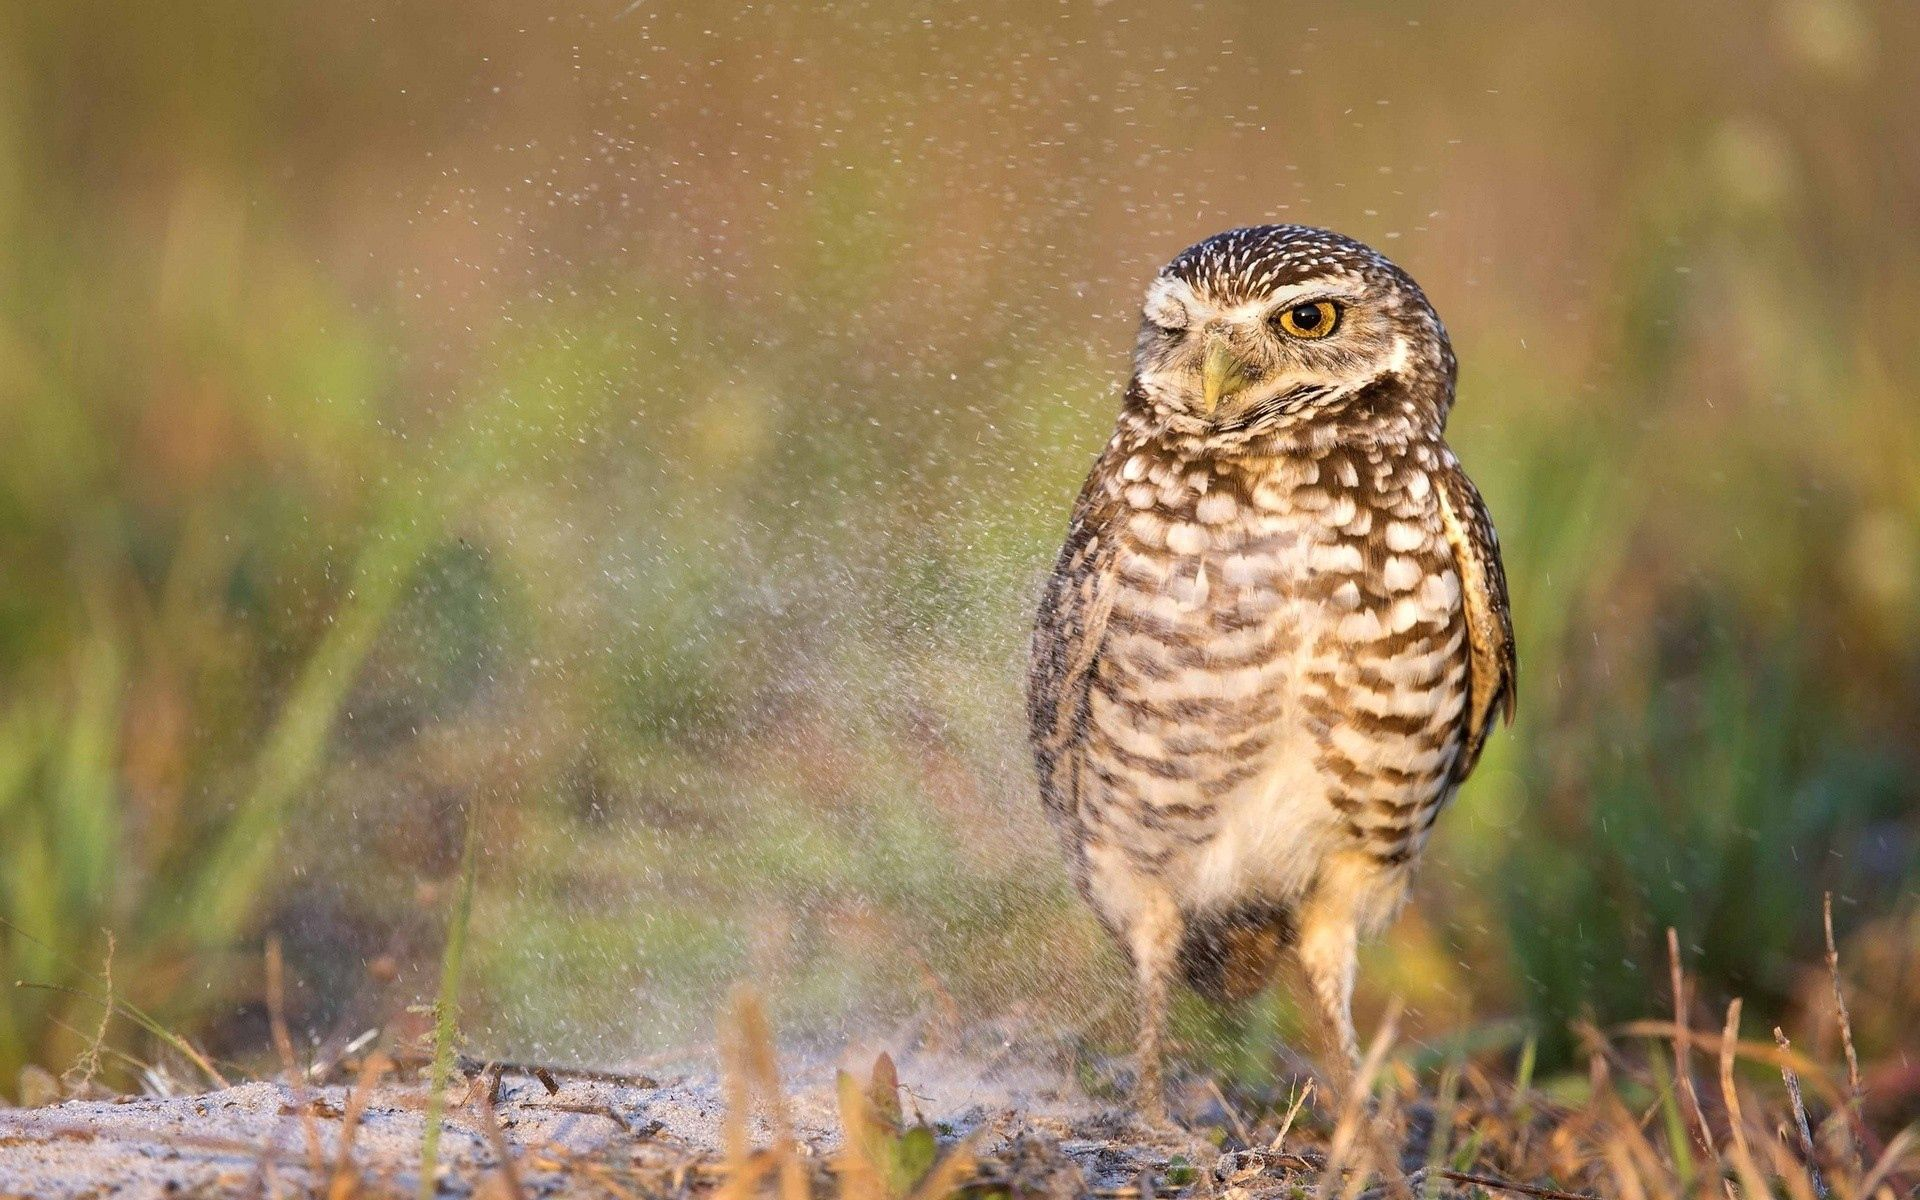 155592 download wallpaper Animals, Owl, Bird, Predator screensavers and pictures for free